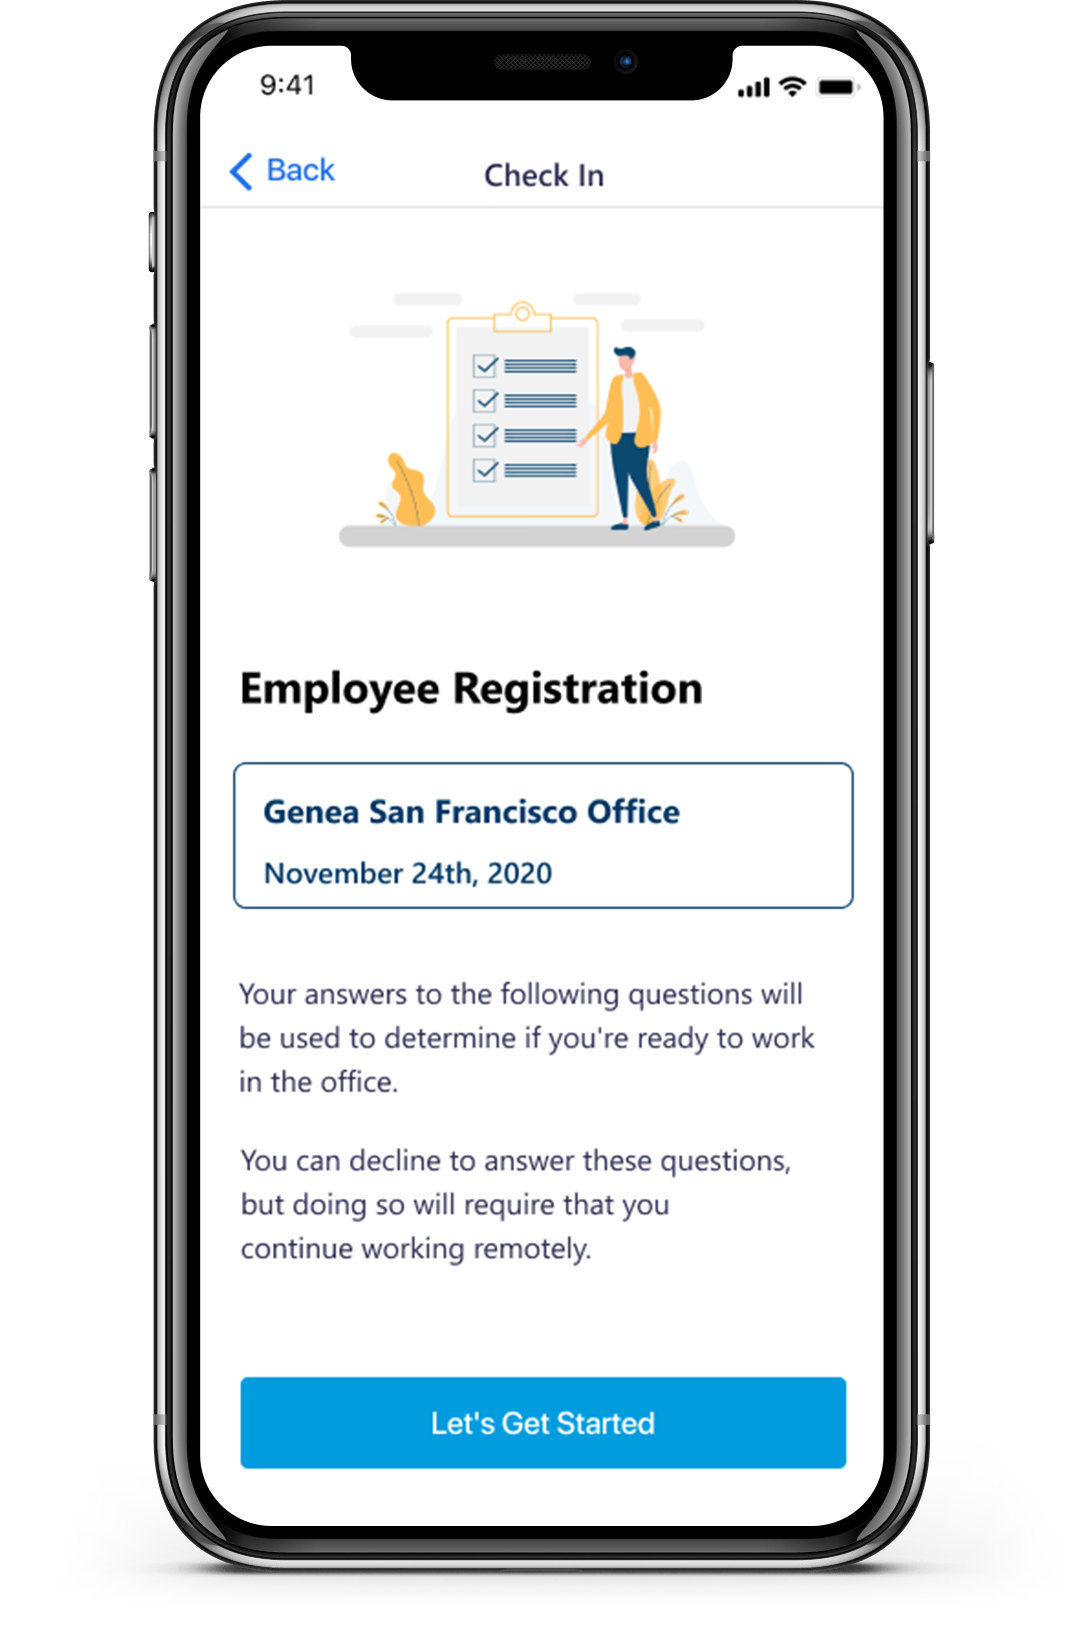 Genea's Safe Workplace feature offers capacity planning, contact tracing, temperature checks and more. These powerful features allow for the safe, responsible return of employees to the workplace.